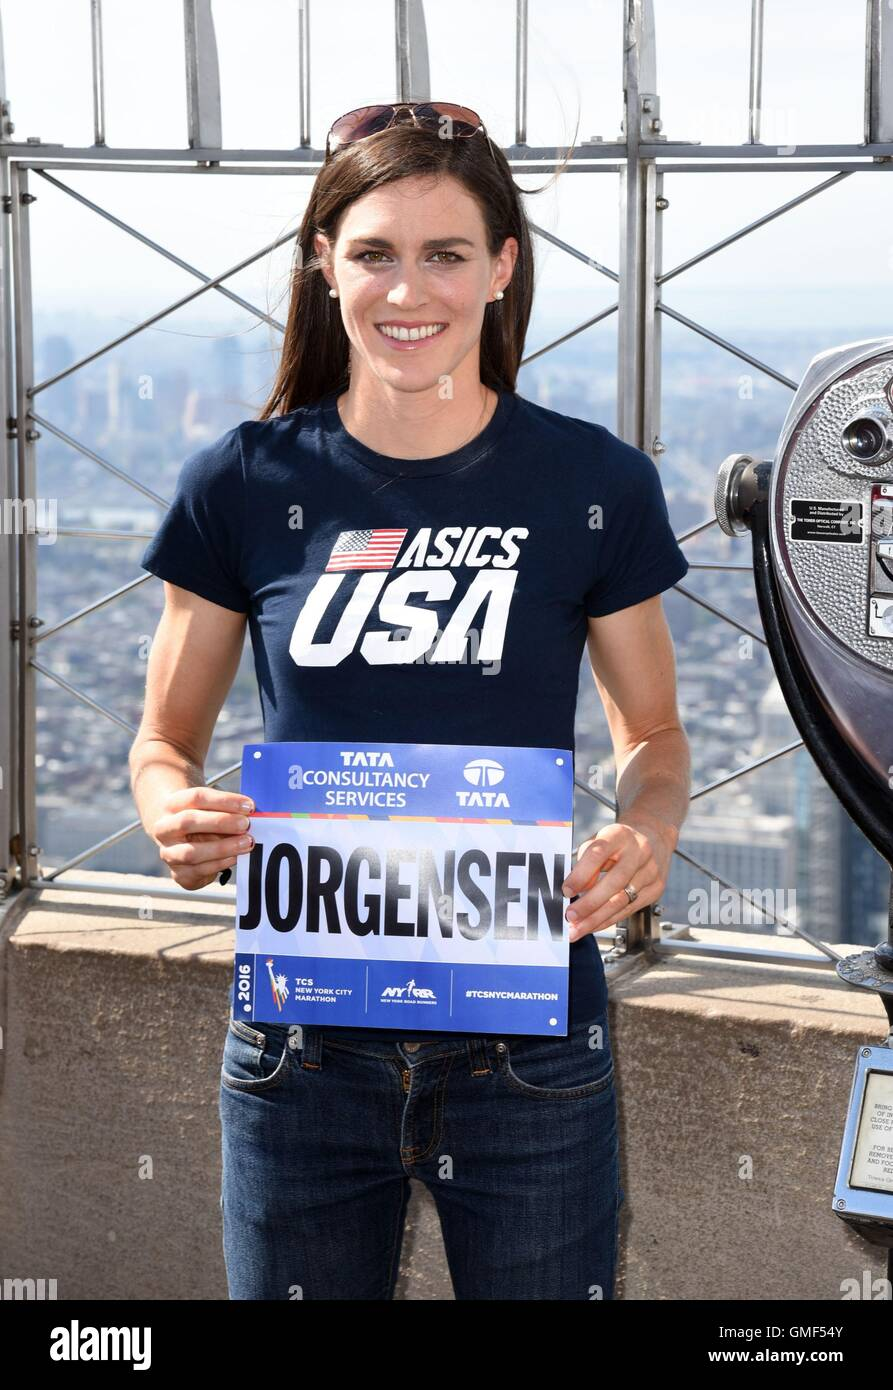 New York, NY, USA. 25th Aug, 2016. Gwen Jorgensen at a public appearance for Olympic Triathlon Gwen Jorgensen Visits - Stock Image